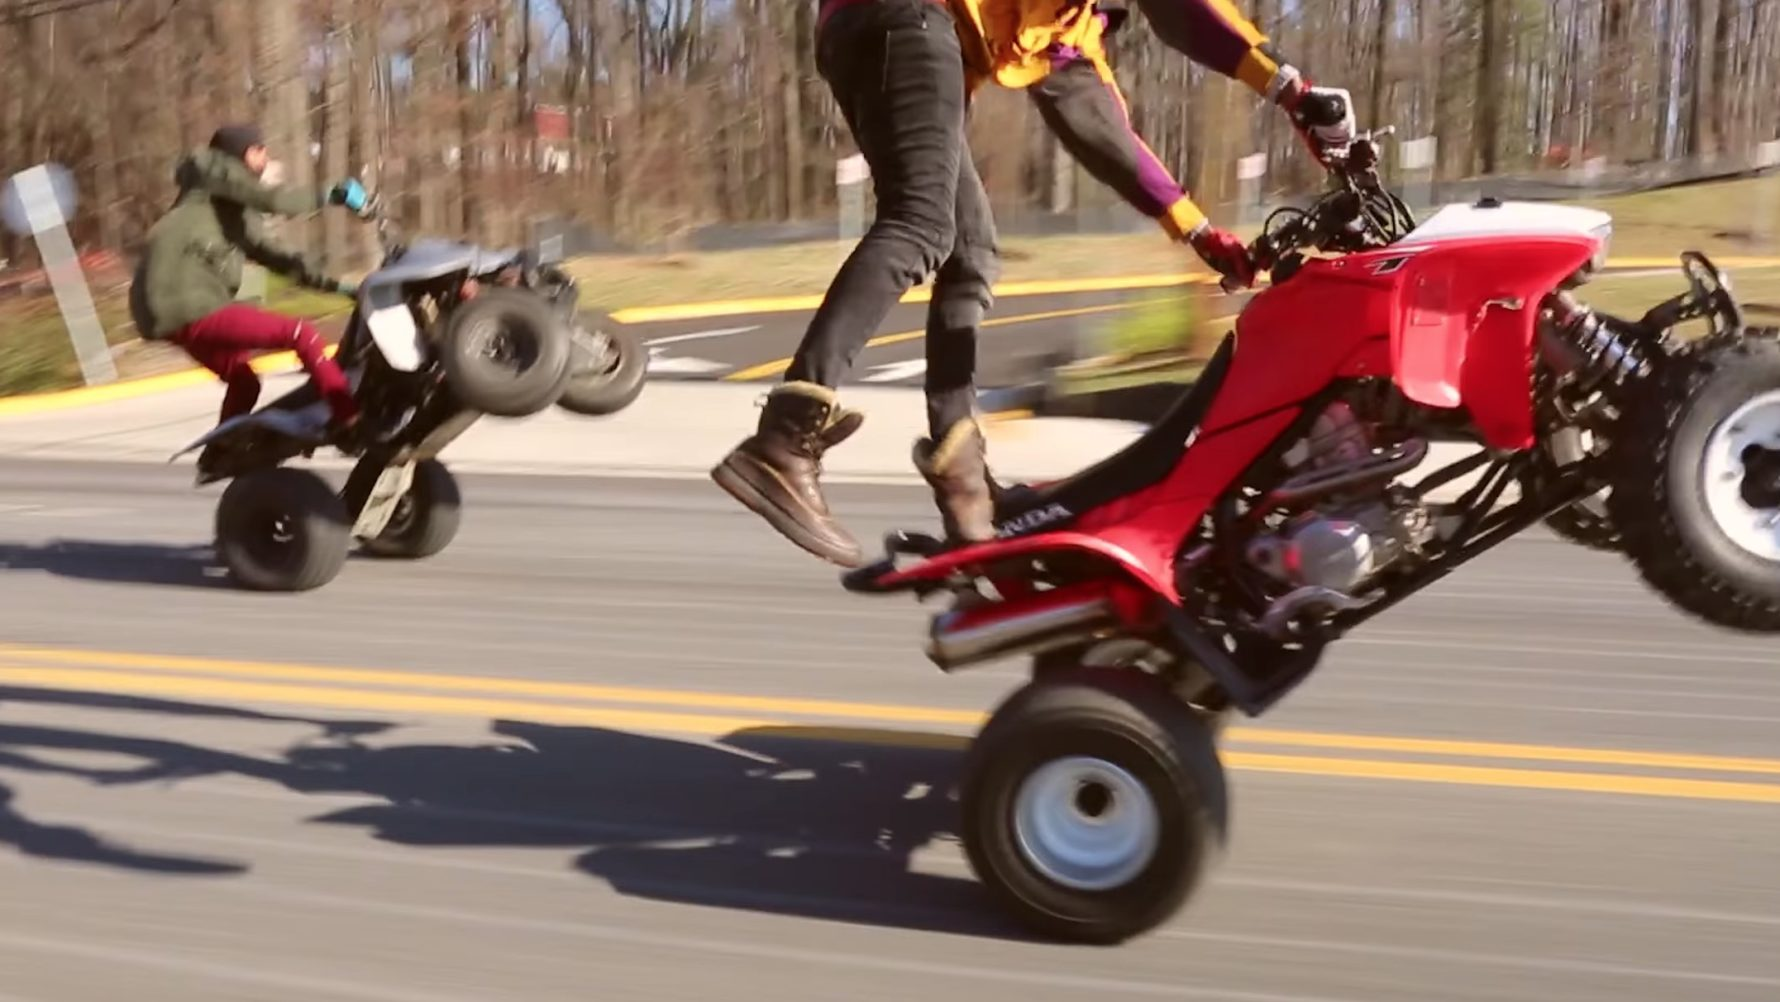 culture or a crime d c group wants to legalize atvs and dirt bikes